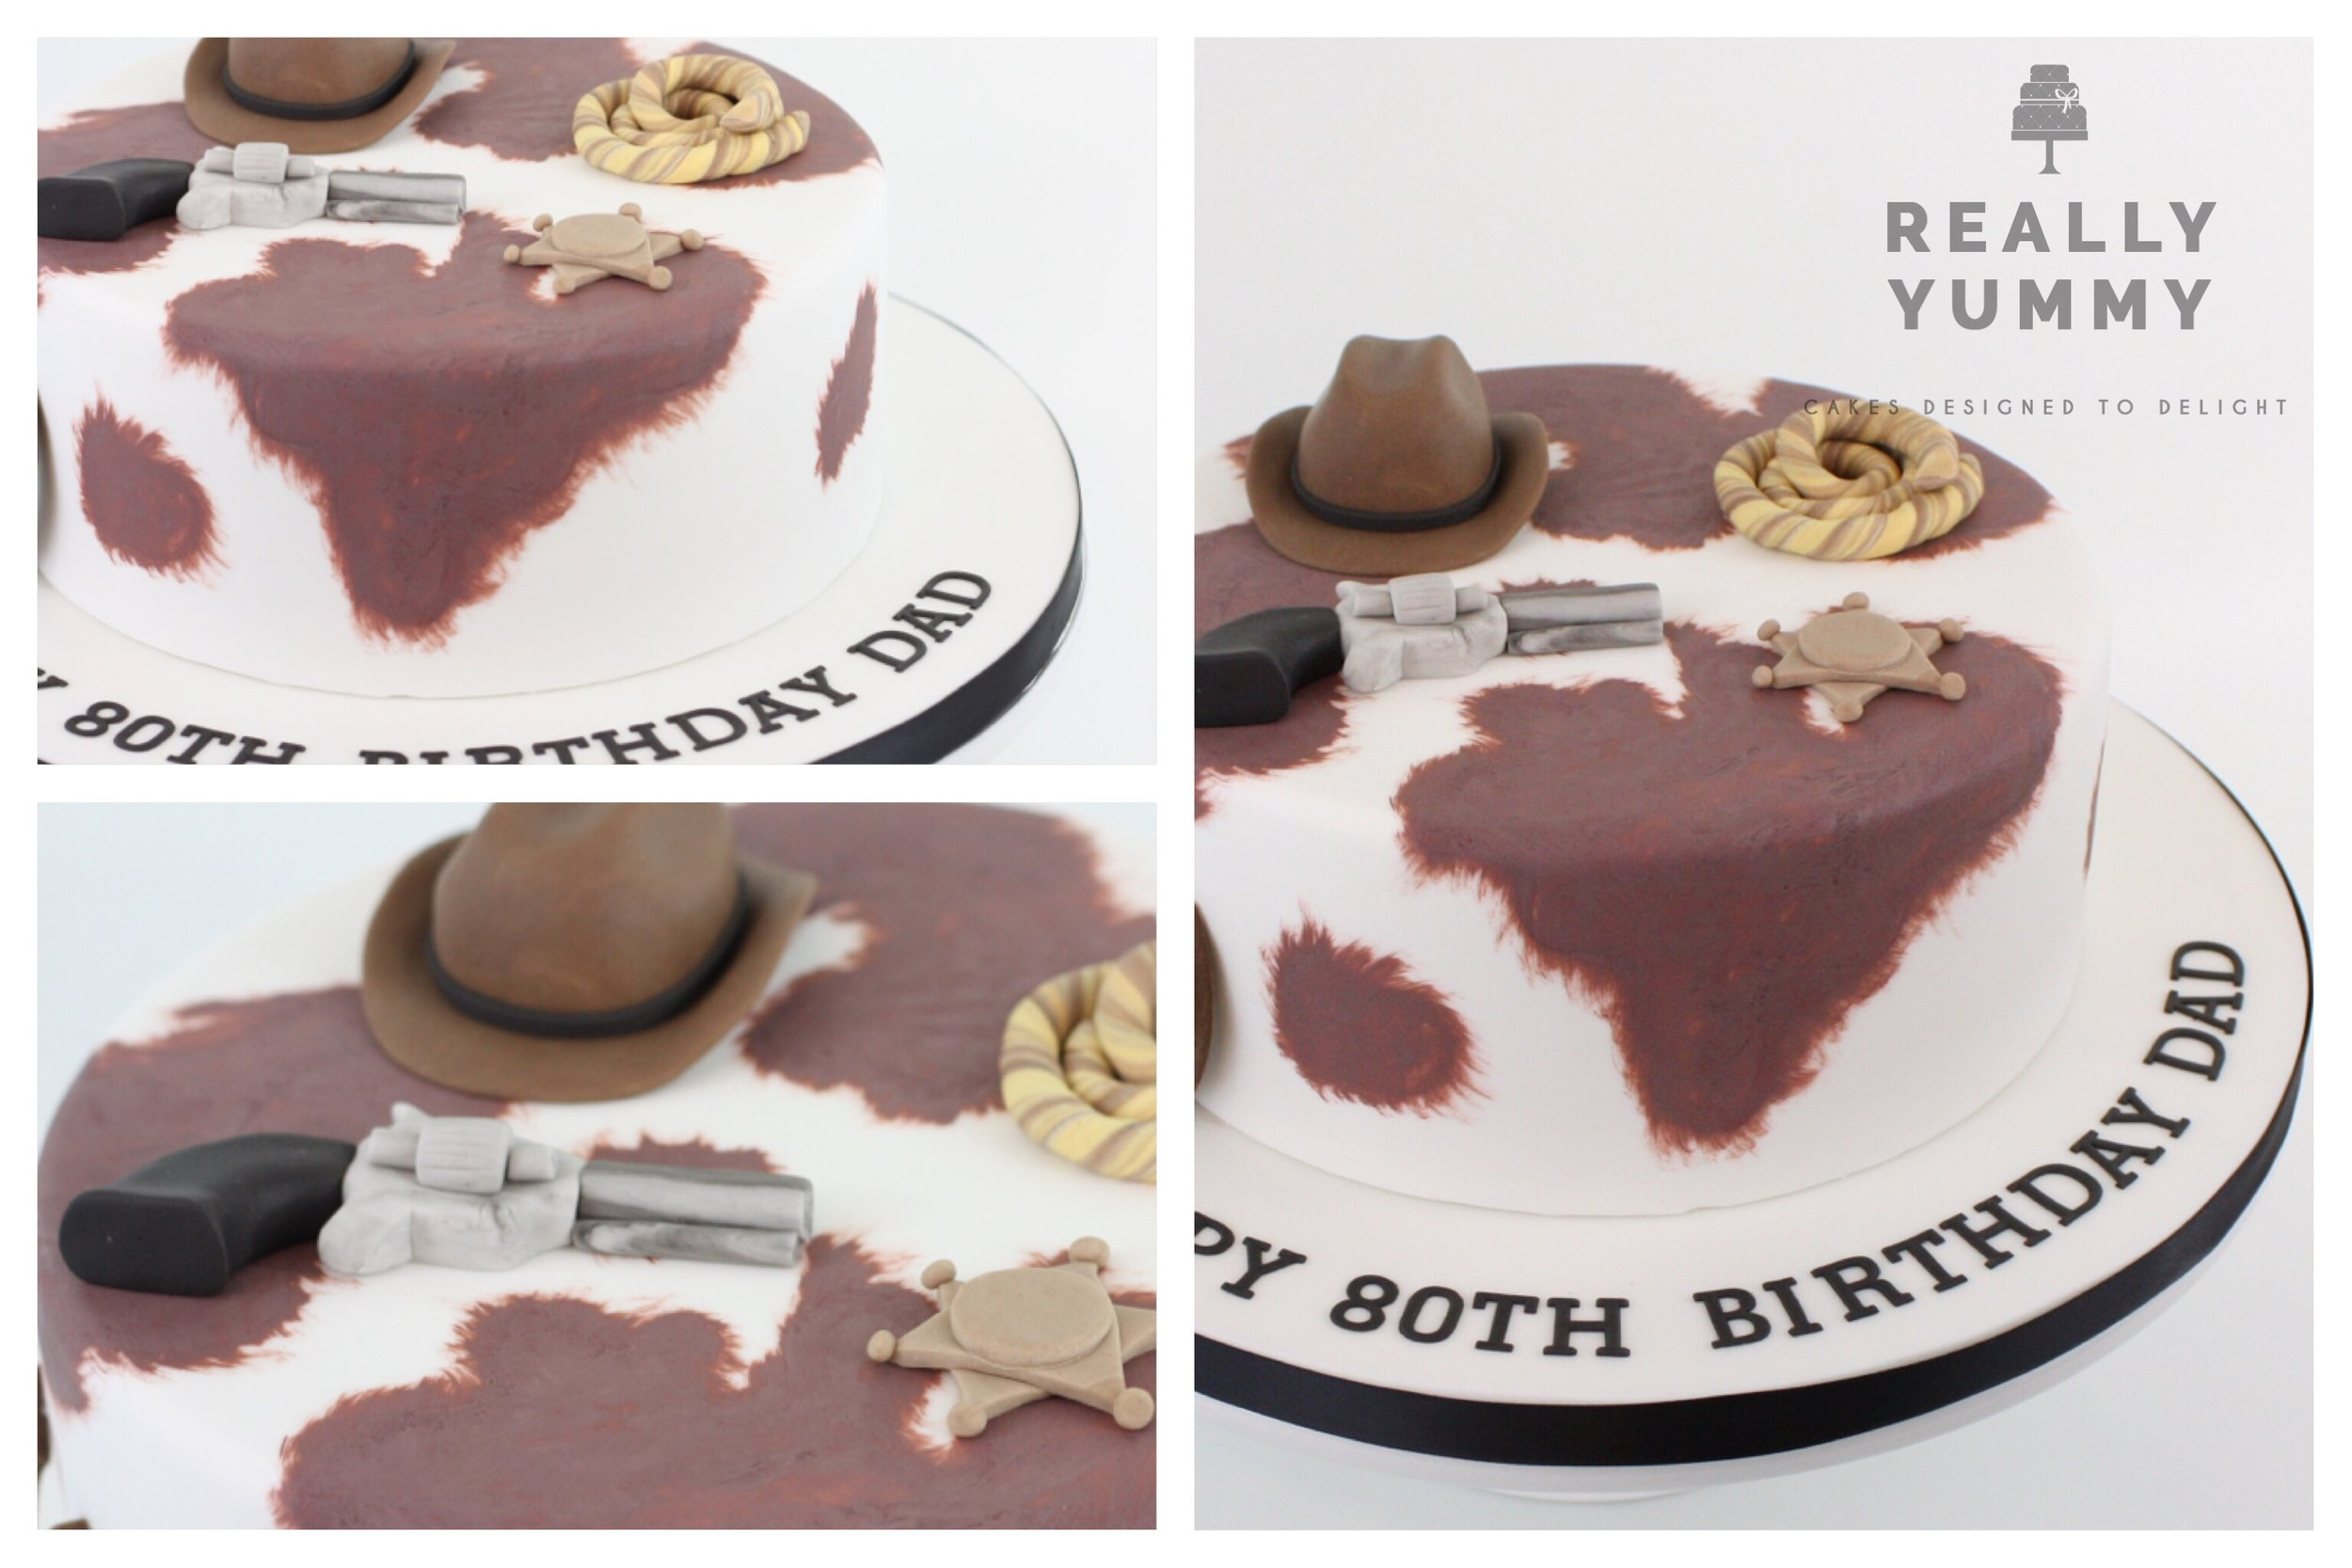 Karen S. - Just wanted to say thank you for the cake you made in the Wild West Theme for my Dad's 80th Birthday, everyone thought it was amazing and it tasted delicious.